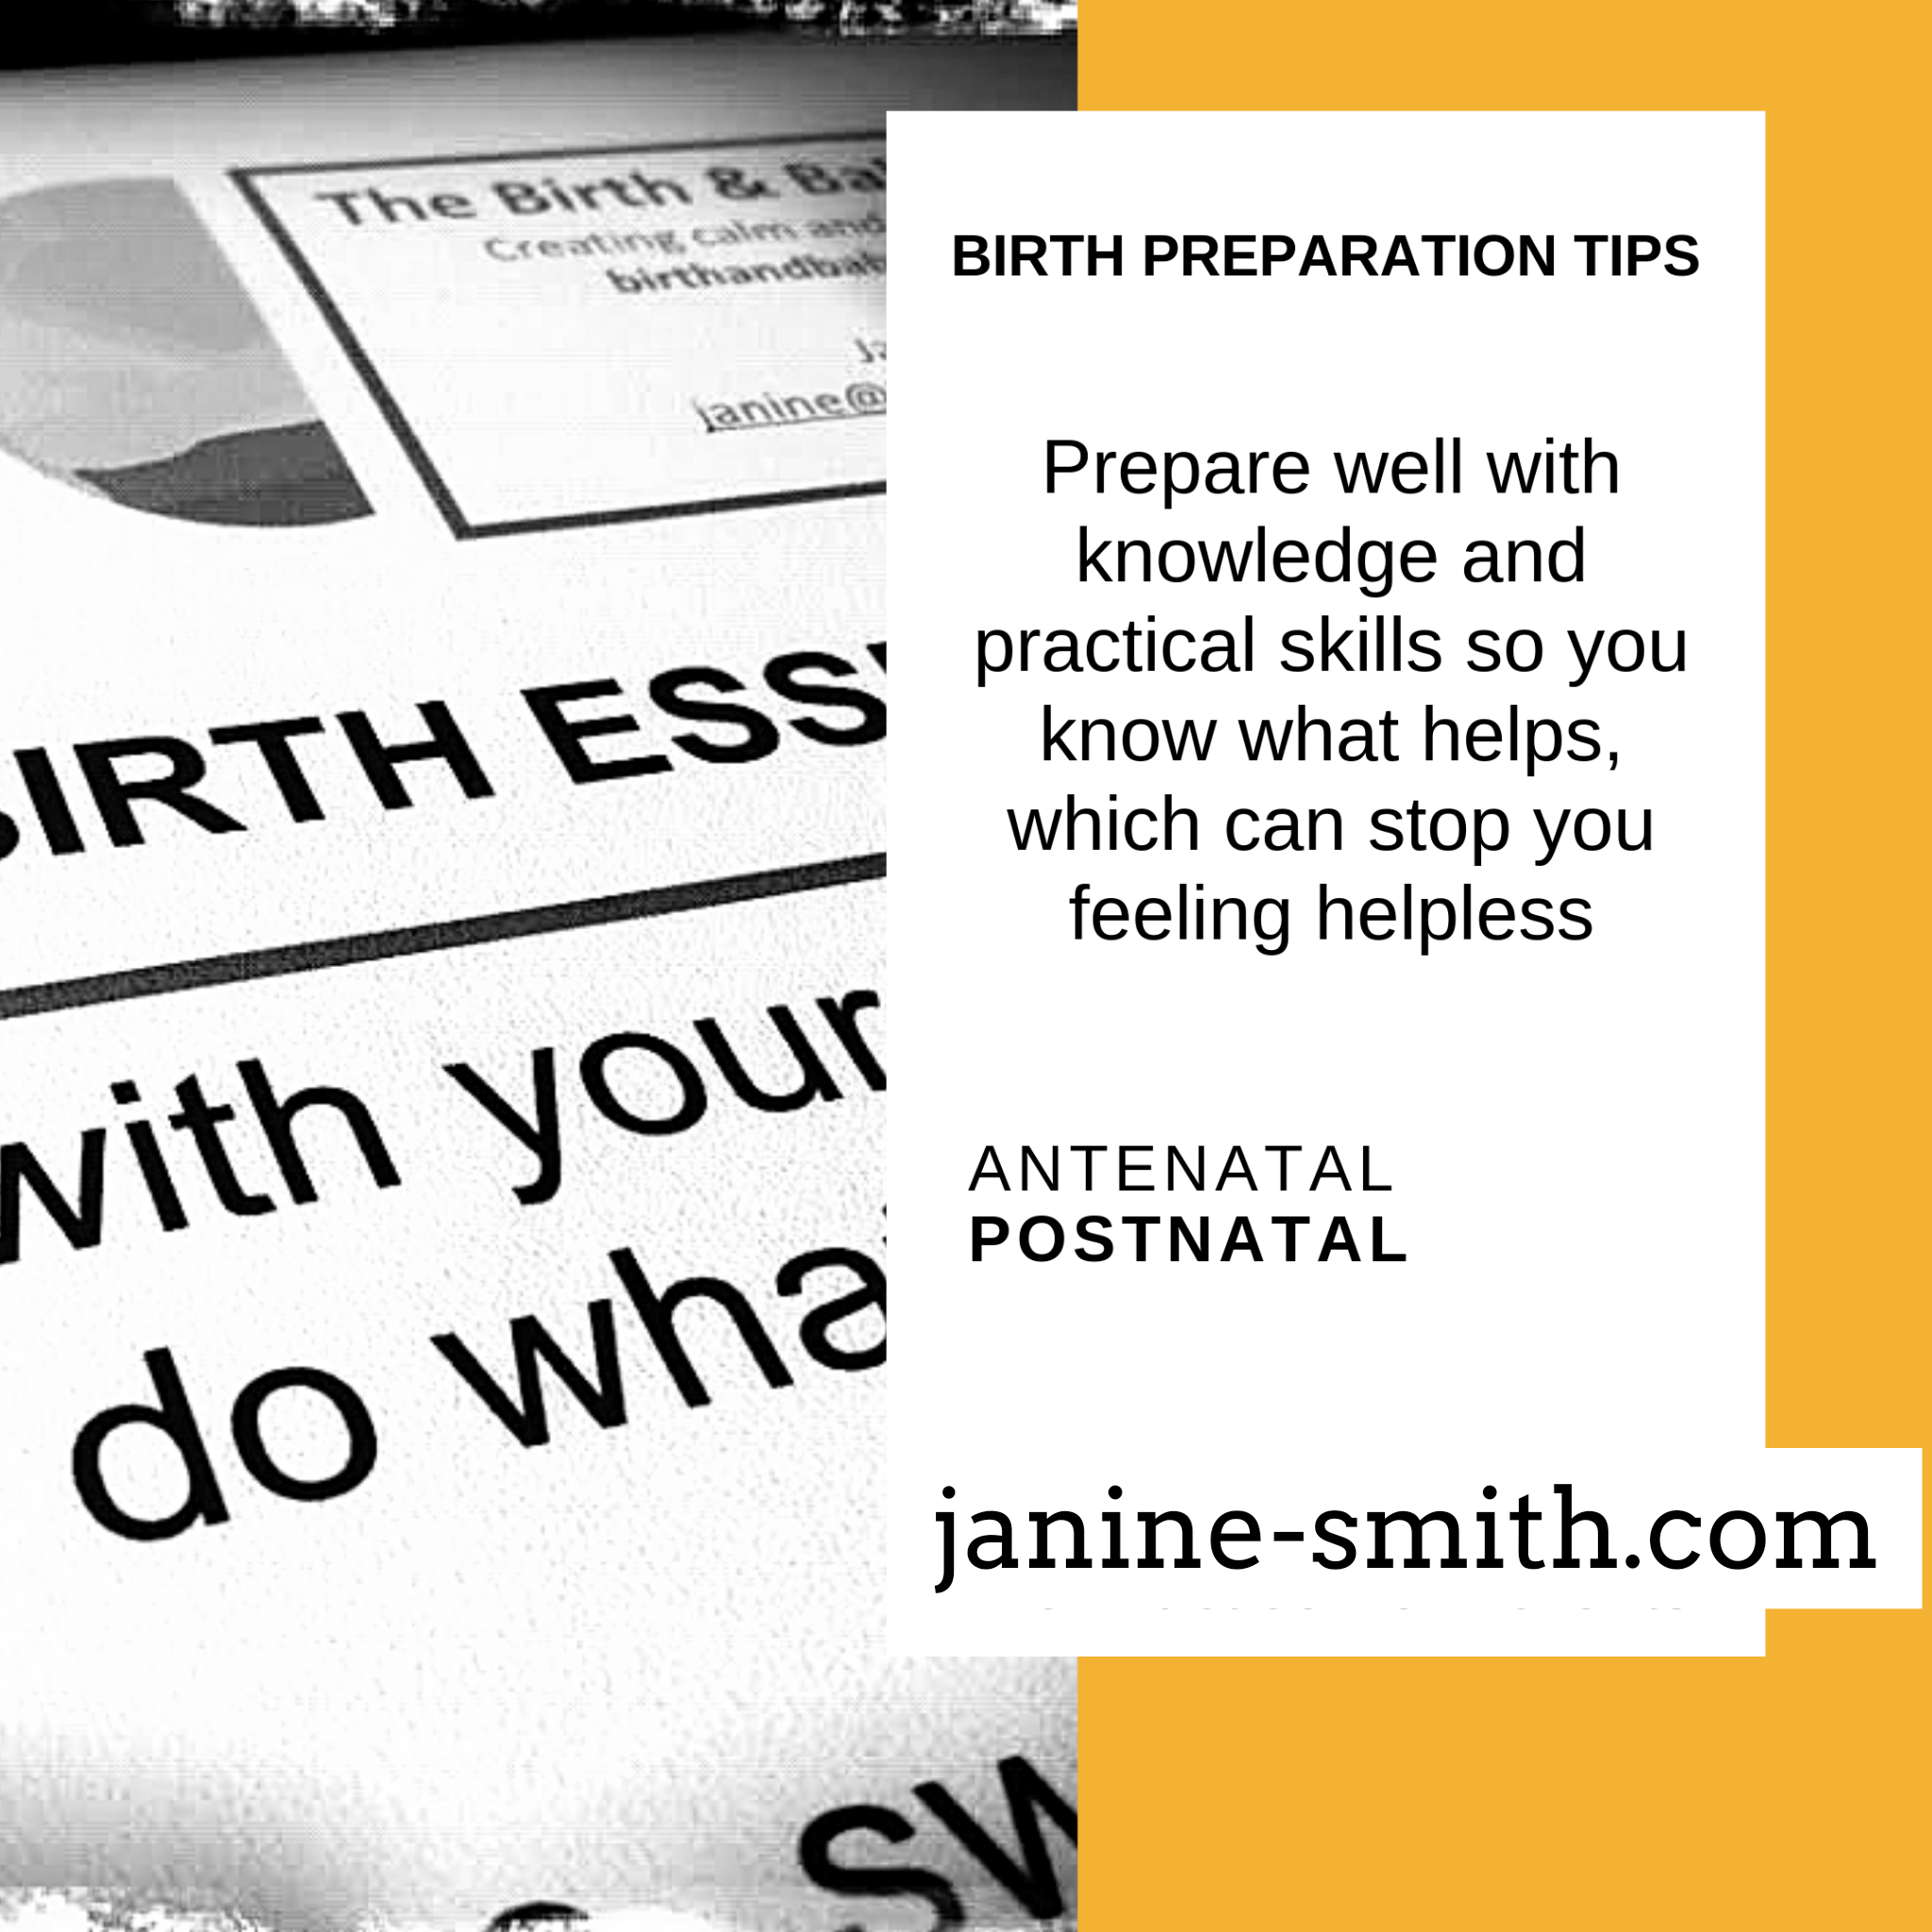 prepare well for labour and birth